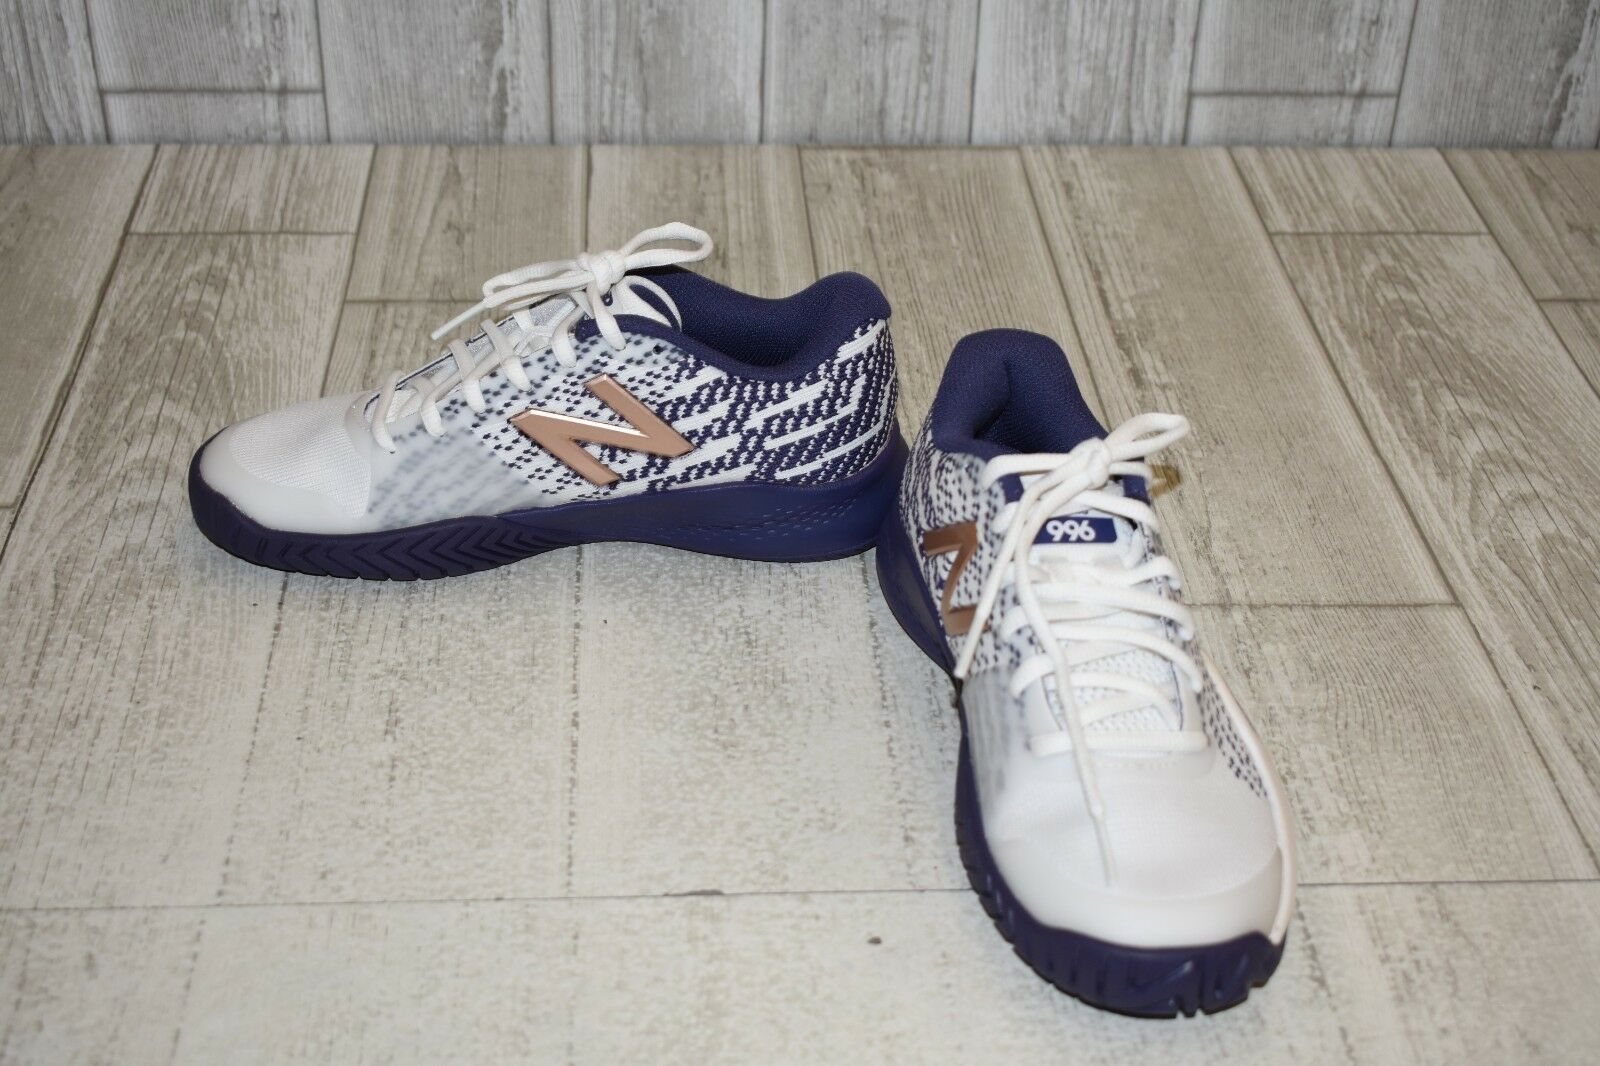 New Balance WCH996v3 Athletic Athletic Athletic shoes - Women's Size 6 B - White Purple NEW a4b492